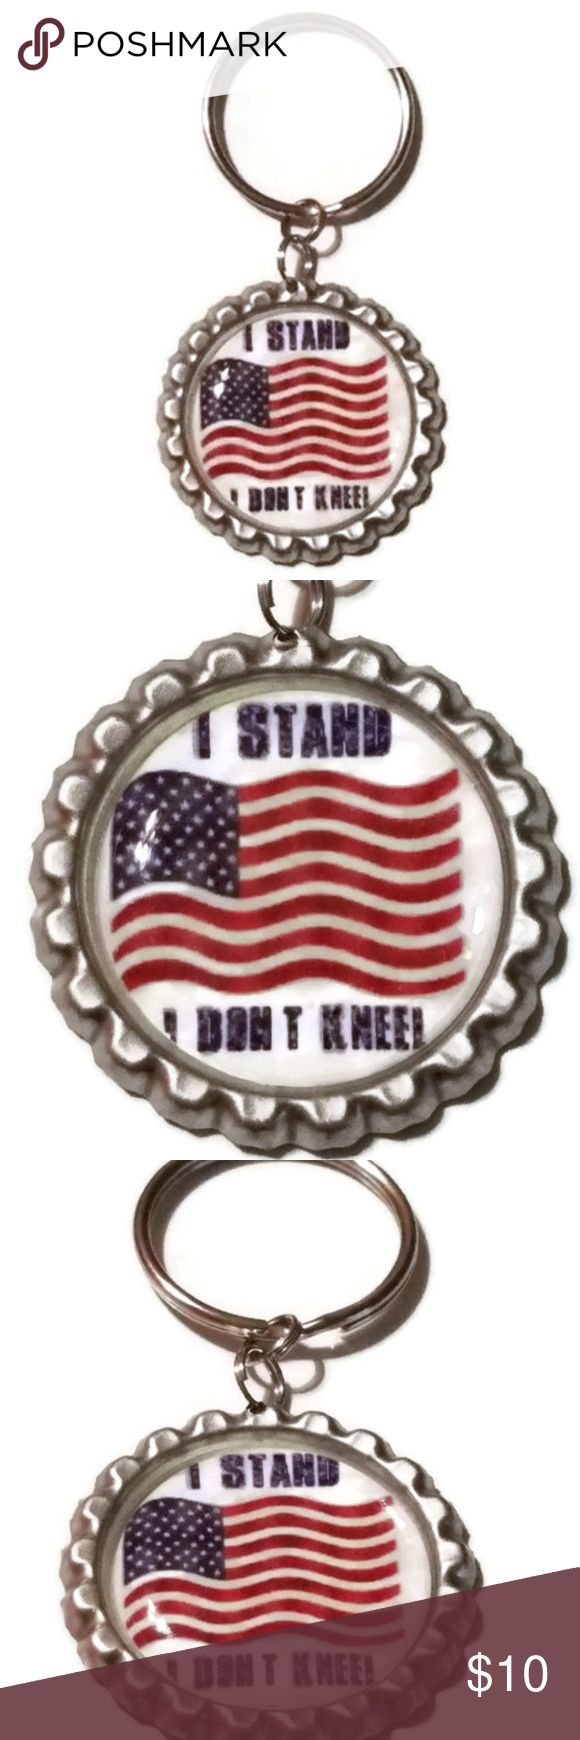 I Stand for the Flag Key Chain Purse Charm I Stand for the Flag, I Don't Kneel National Anthem Keychain, I Stand for the National Anthem, USA Keychain, American Flag Keychain, Gift  1 inch silver color flattened bottle cap with a keyring attached. Accessories Key & Card Holders